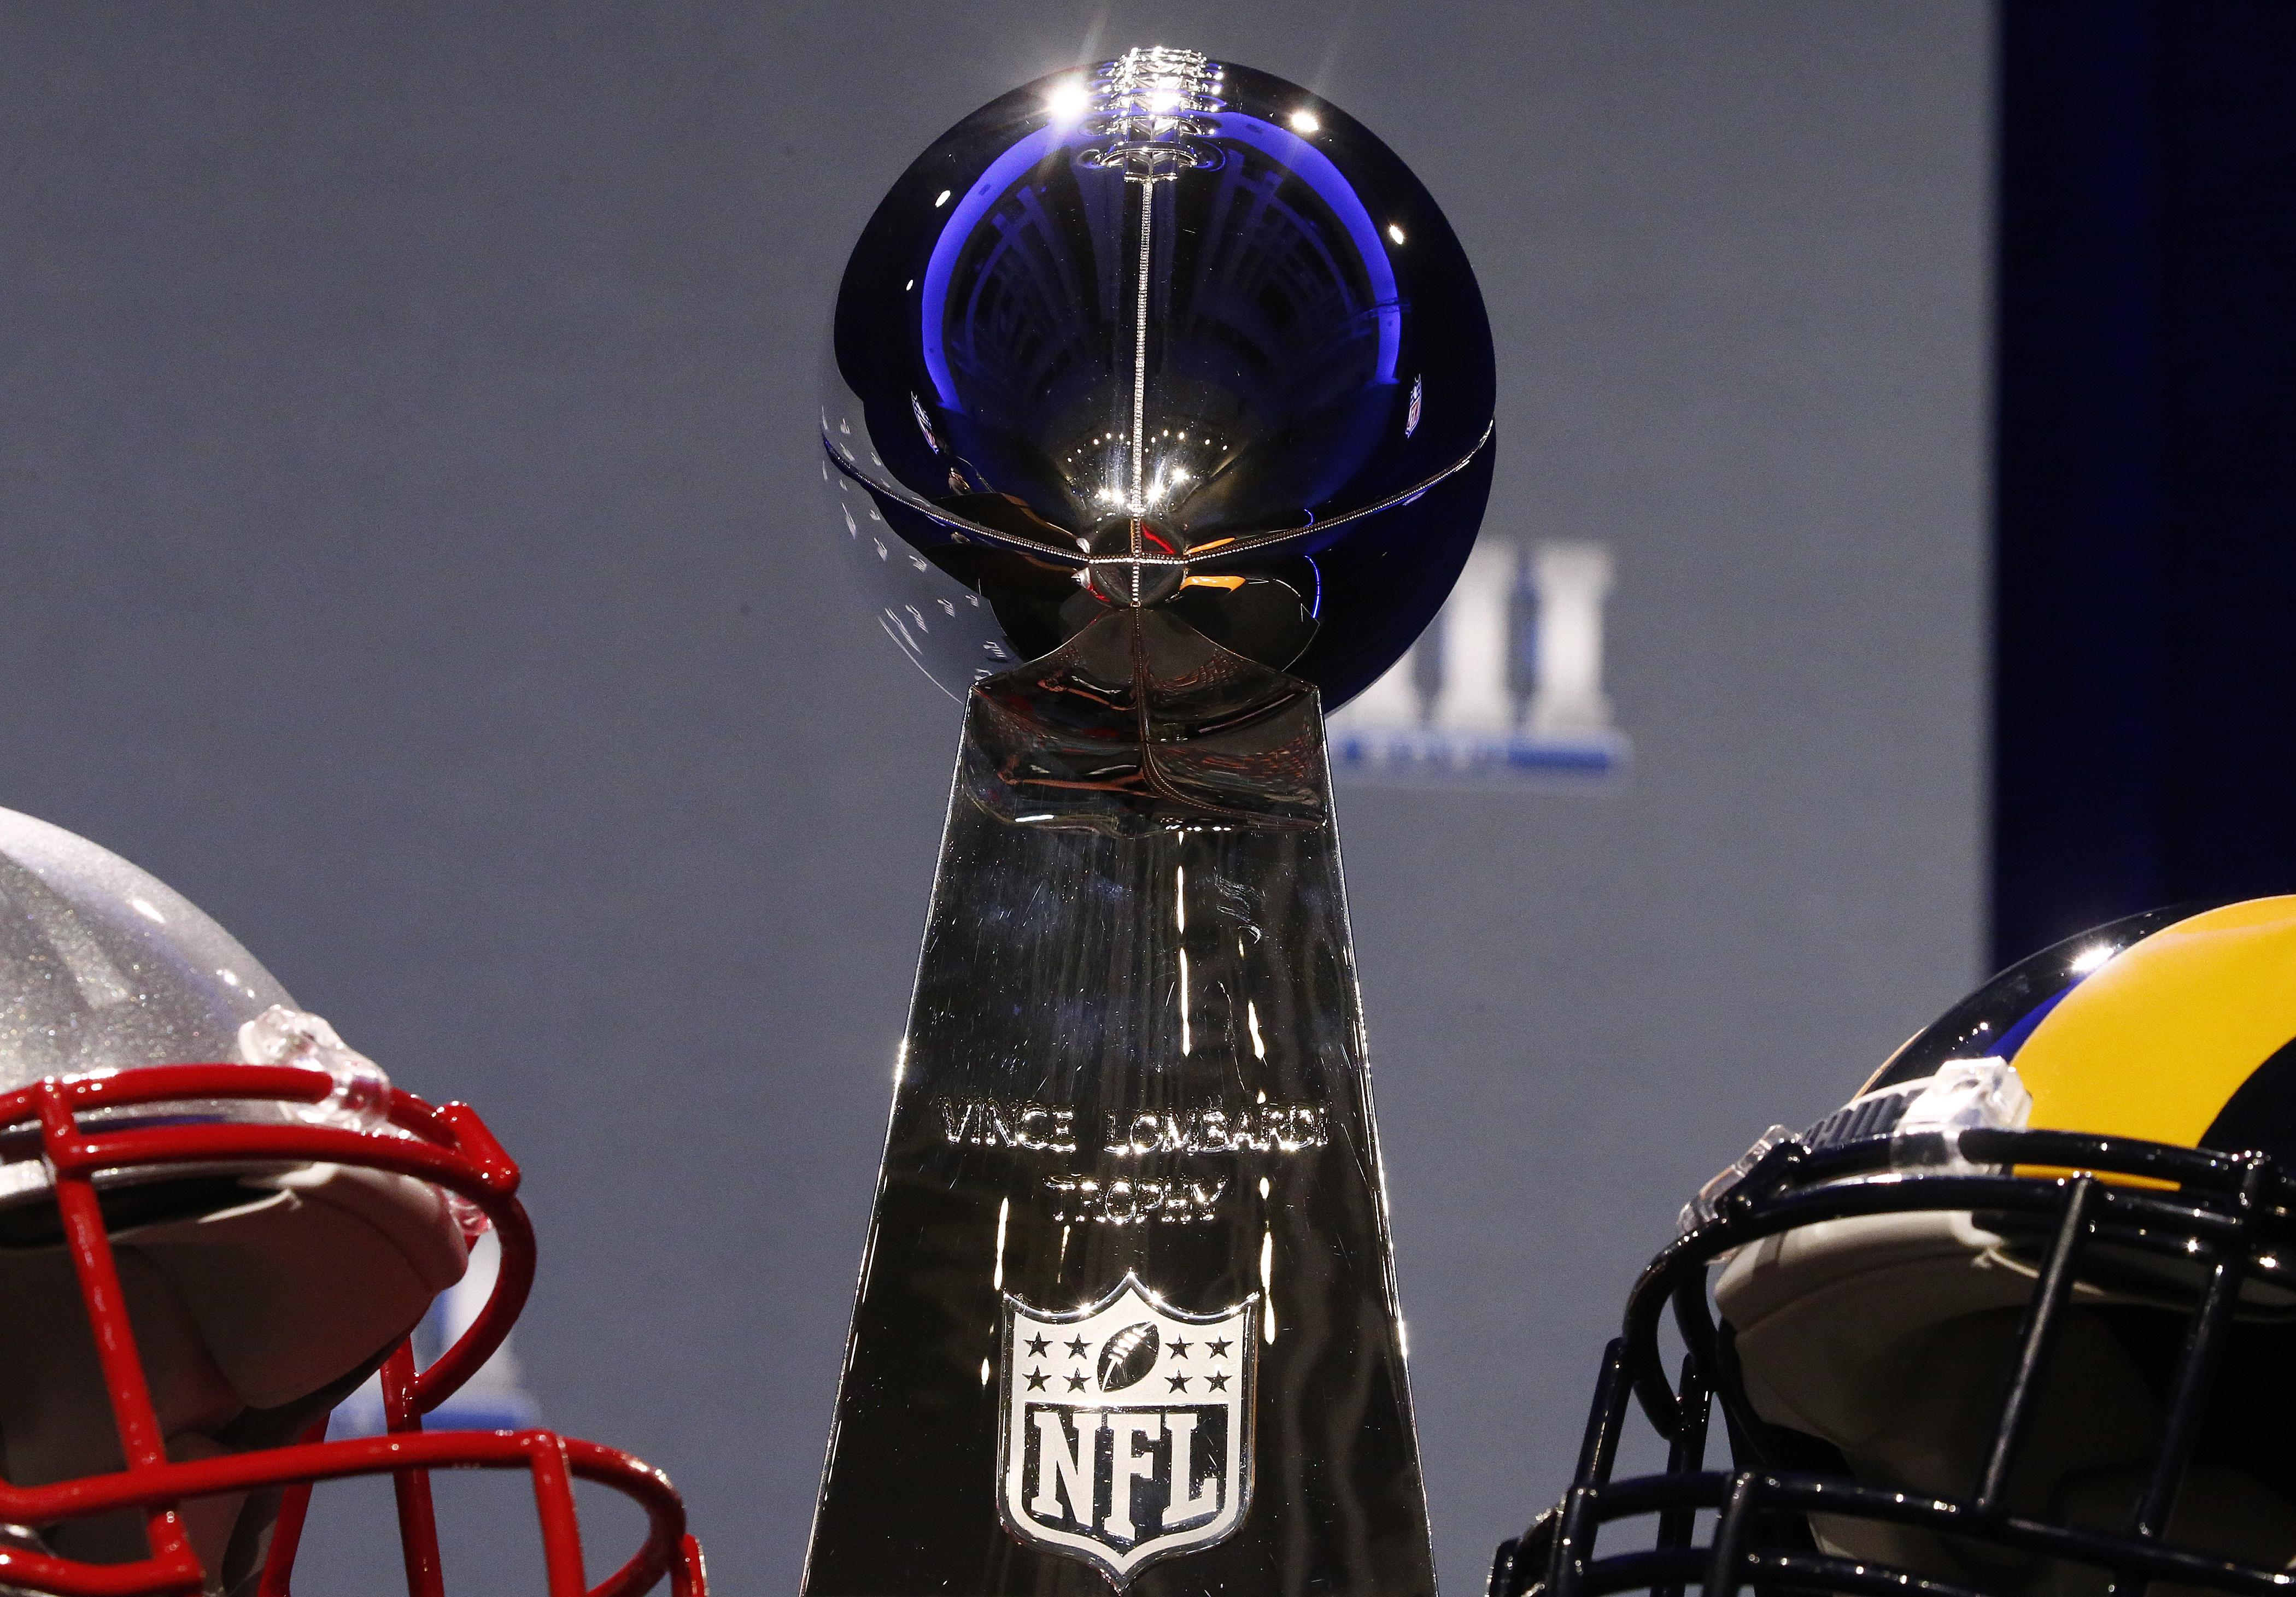 The Vince Lombardi Trophy is up for grabs but the game is only part of the experience